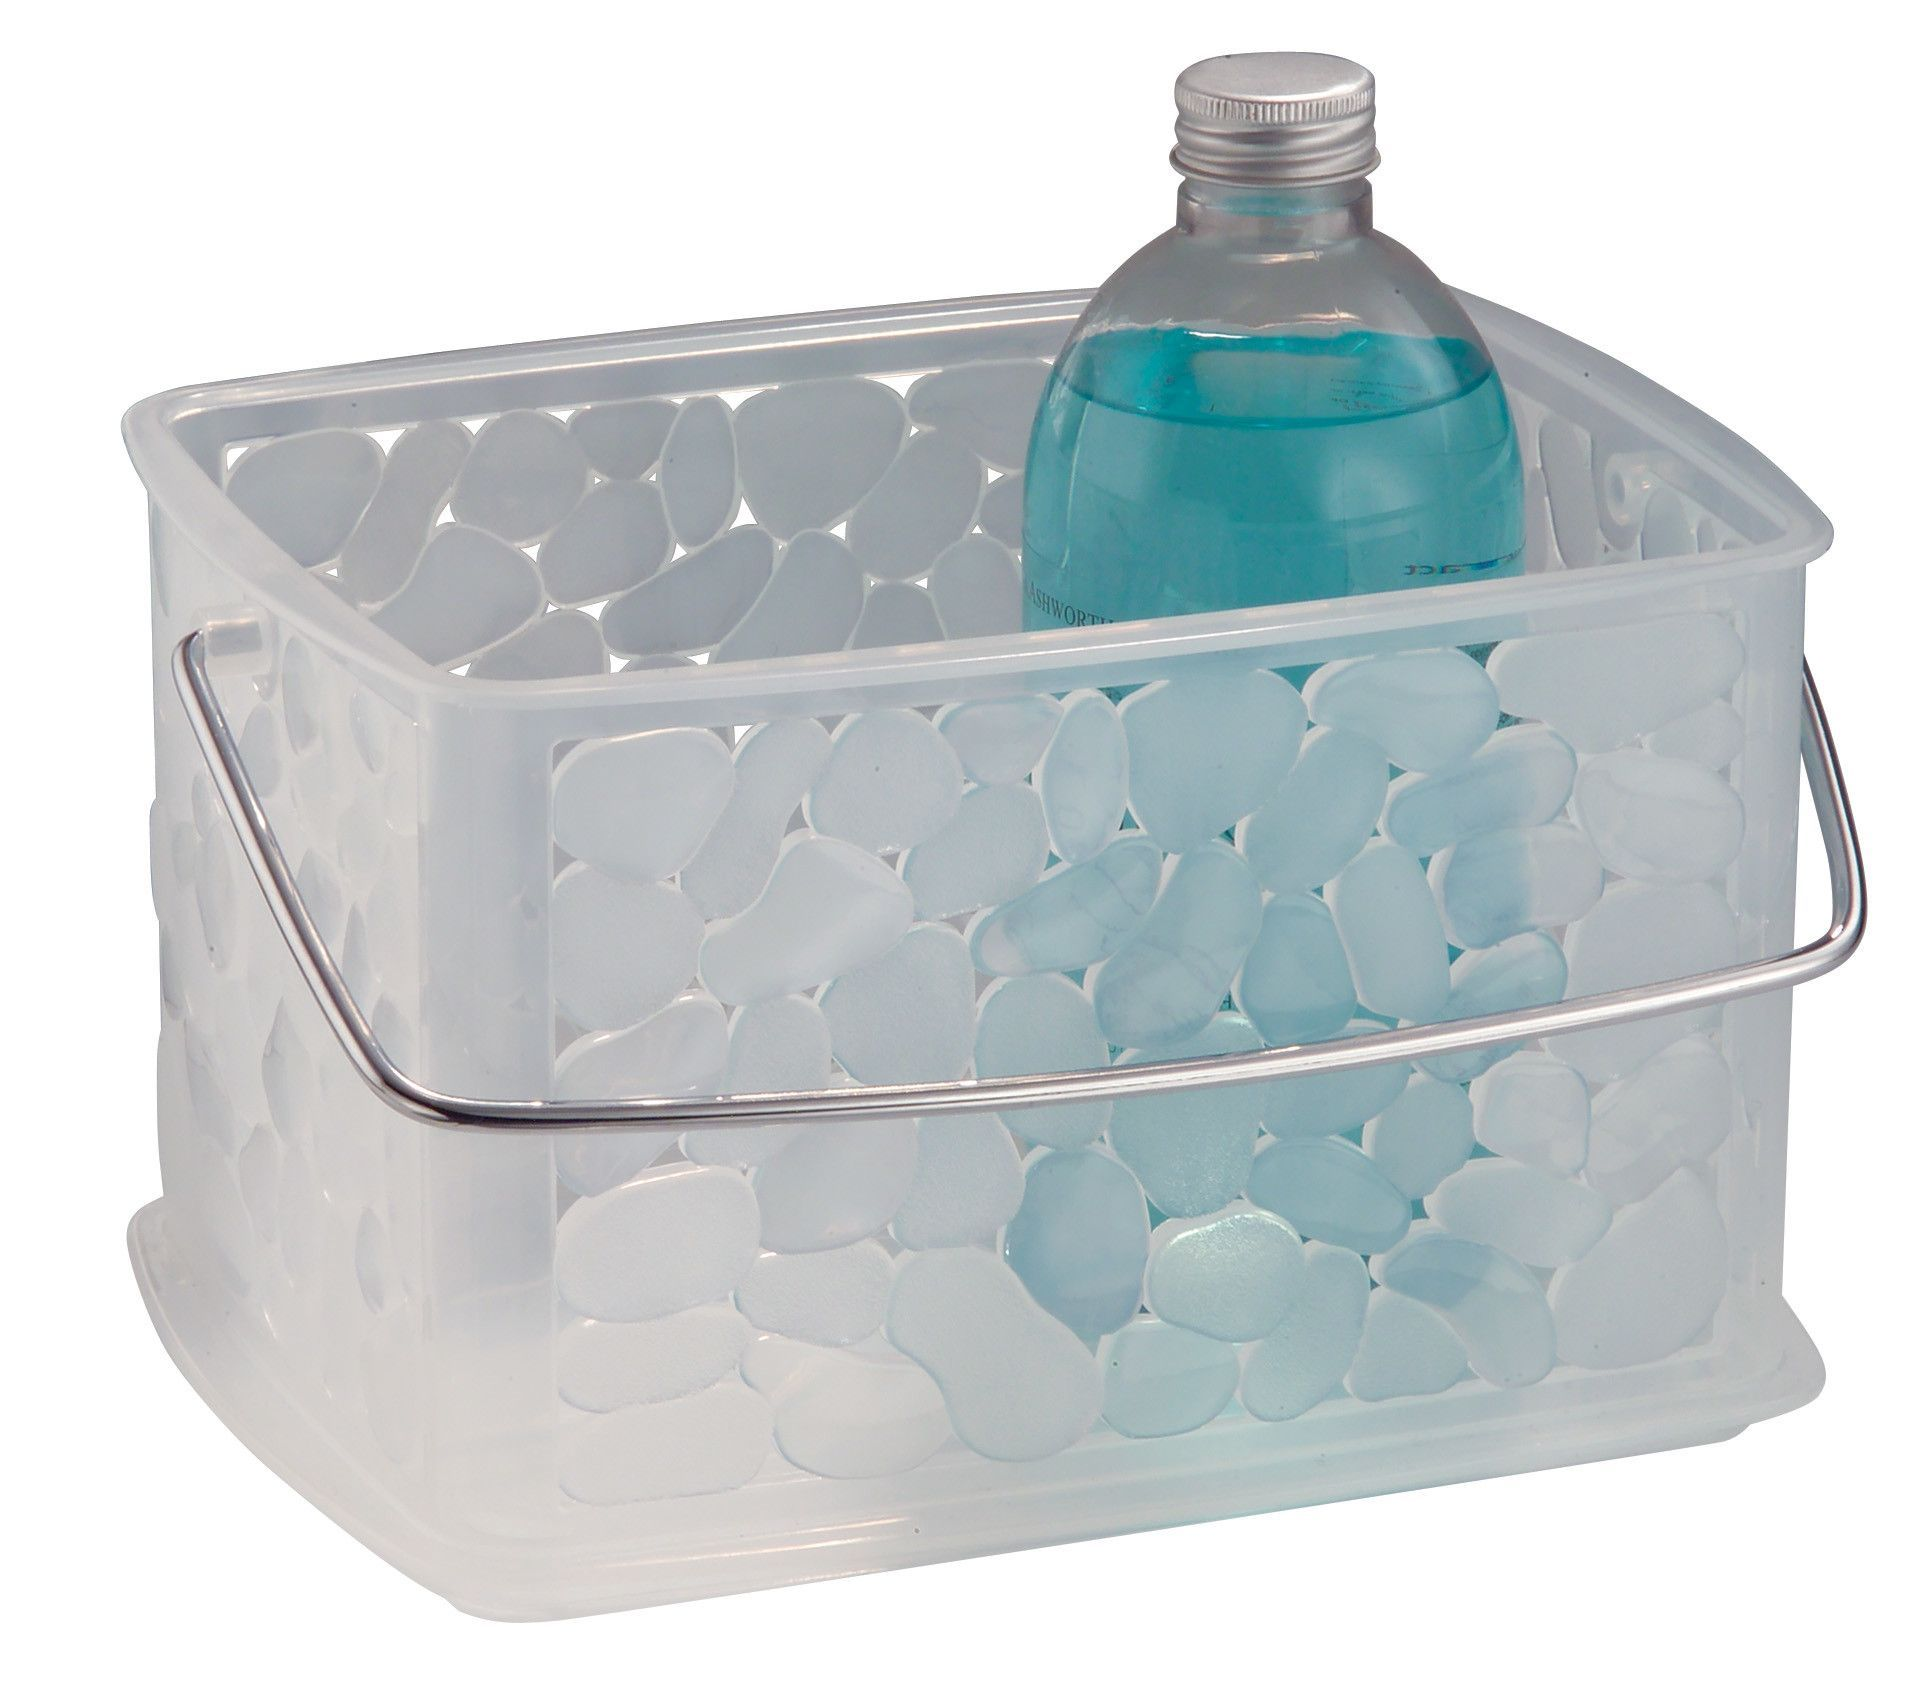 Pebblz Storage Basket | Products | Pinterest | Storage baskets and ...